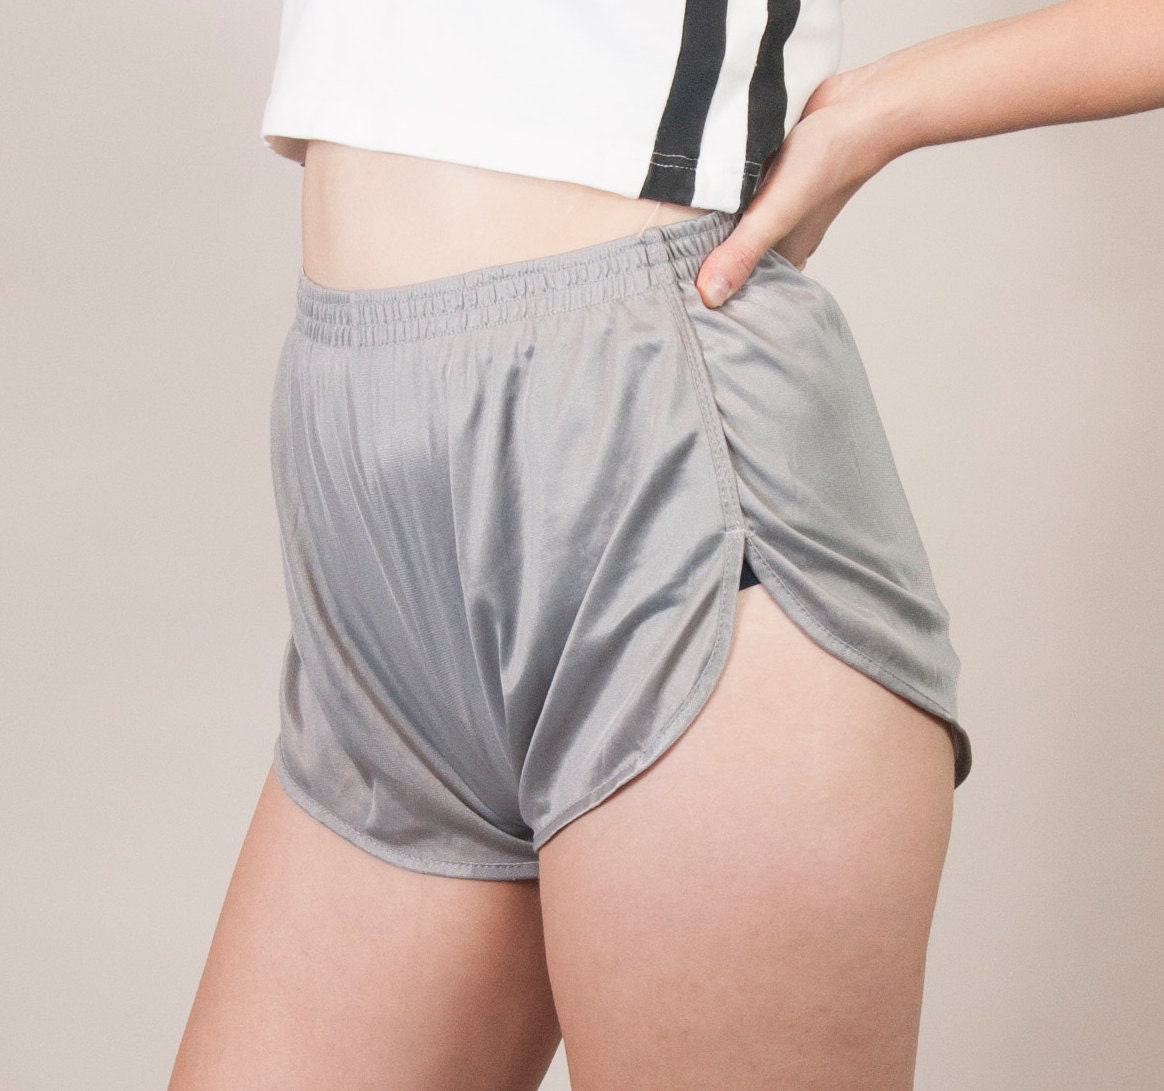 Vintage Dolphin Shorts 17